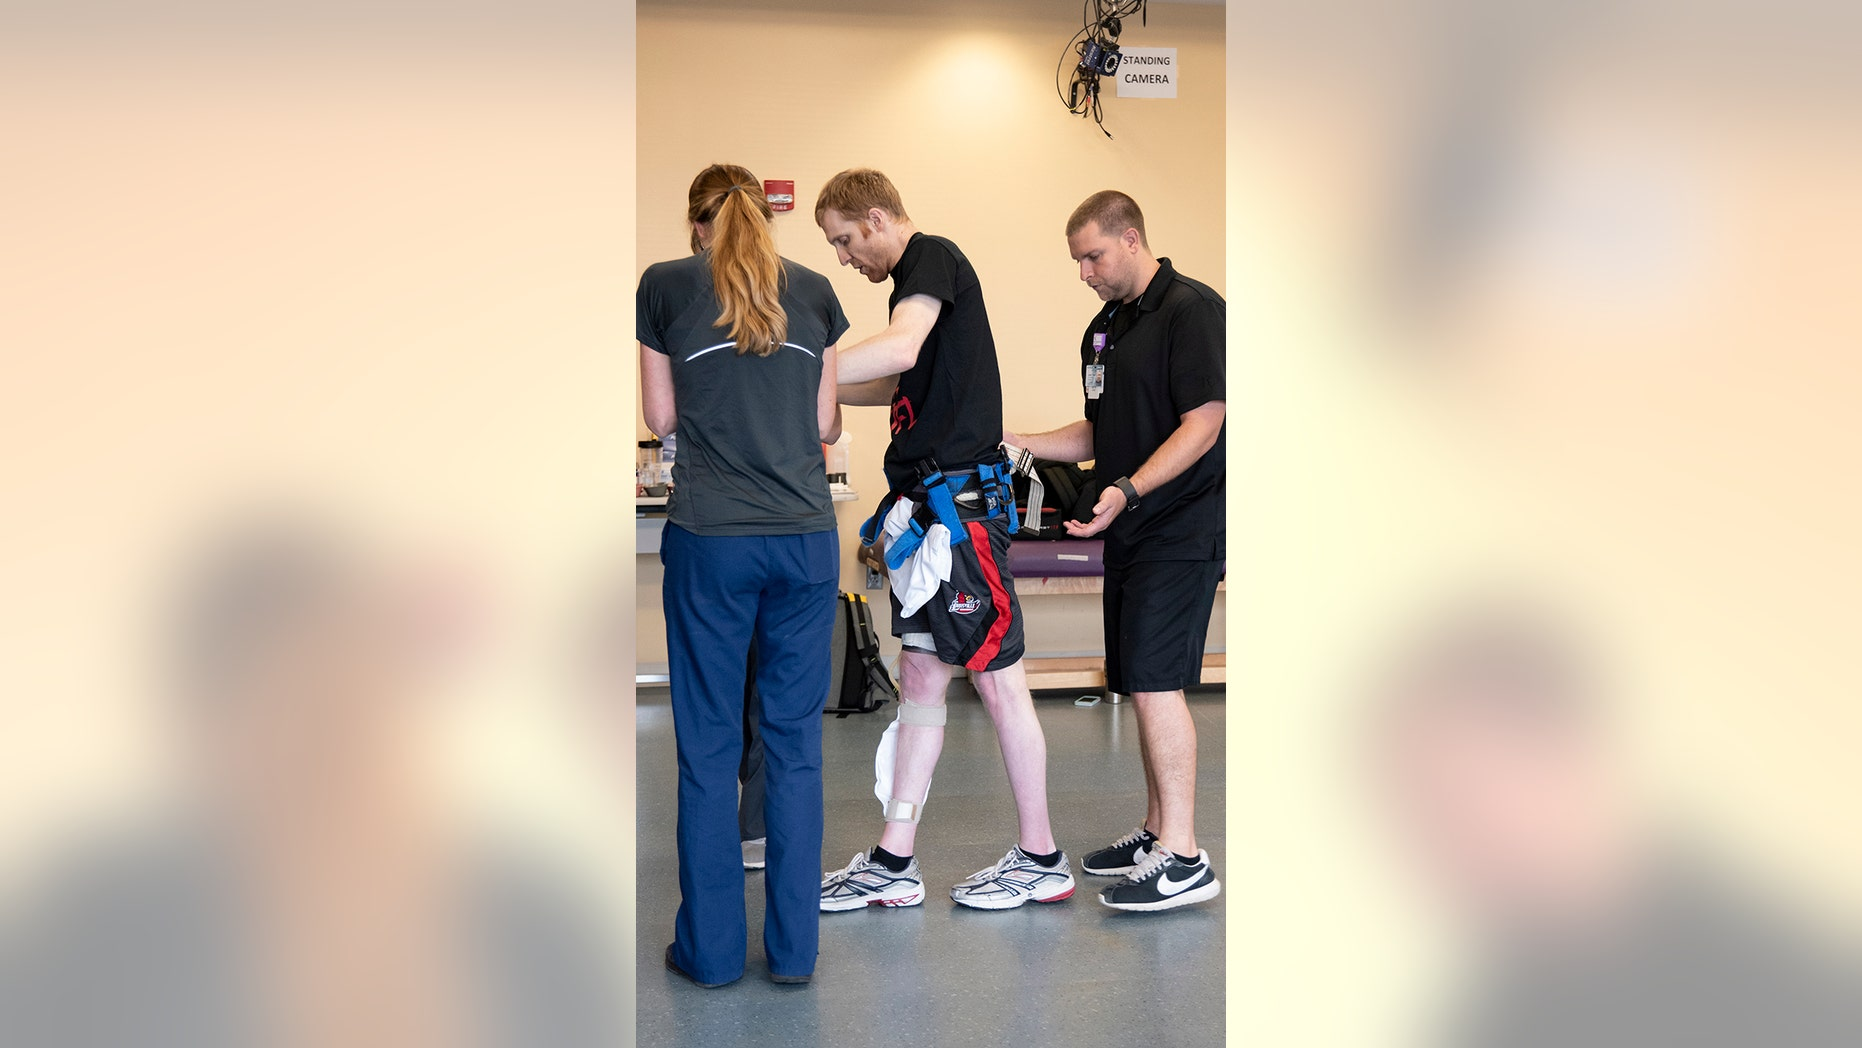 In this May 22, 2018 photo provided by the University of Louisville, Jeff Marquis of Louisville, Ky., is helped by a physical therapist during a study at the university that aimed to help the paralyzed stand and take steps with a combination of spinal stimulation and intense rehab. Marquis was paralyzed in a mountain biking accident. (Tom Fougerousse/University of Louisville via AP)